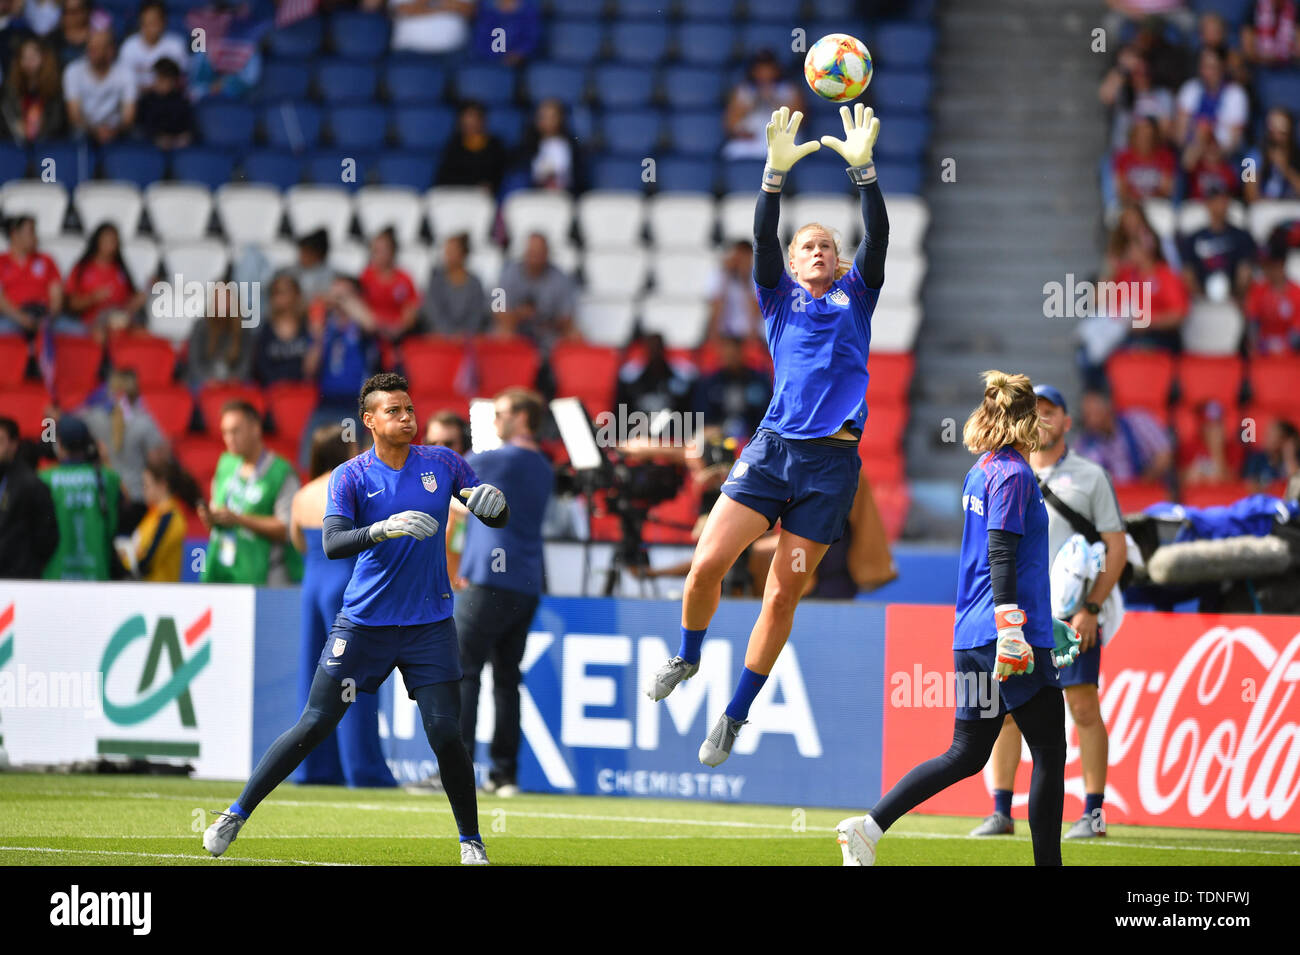 16 june 2019 Paris, France Soccer Women's World Cup France 2019: USA v Chile  Alyssa Naeher (Torhüter, USA) (1) catching Ball at warm up - Stock Image